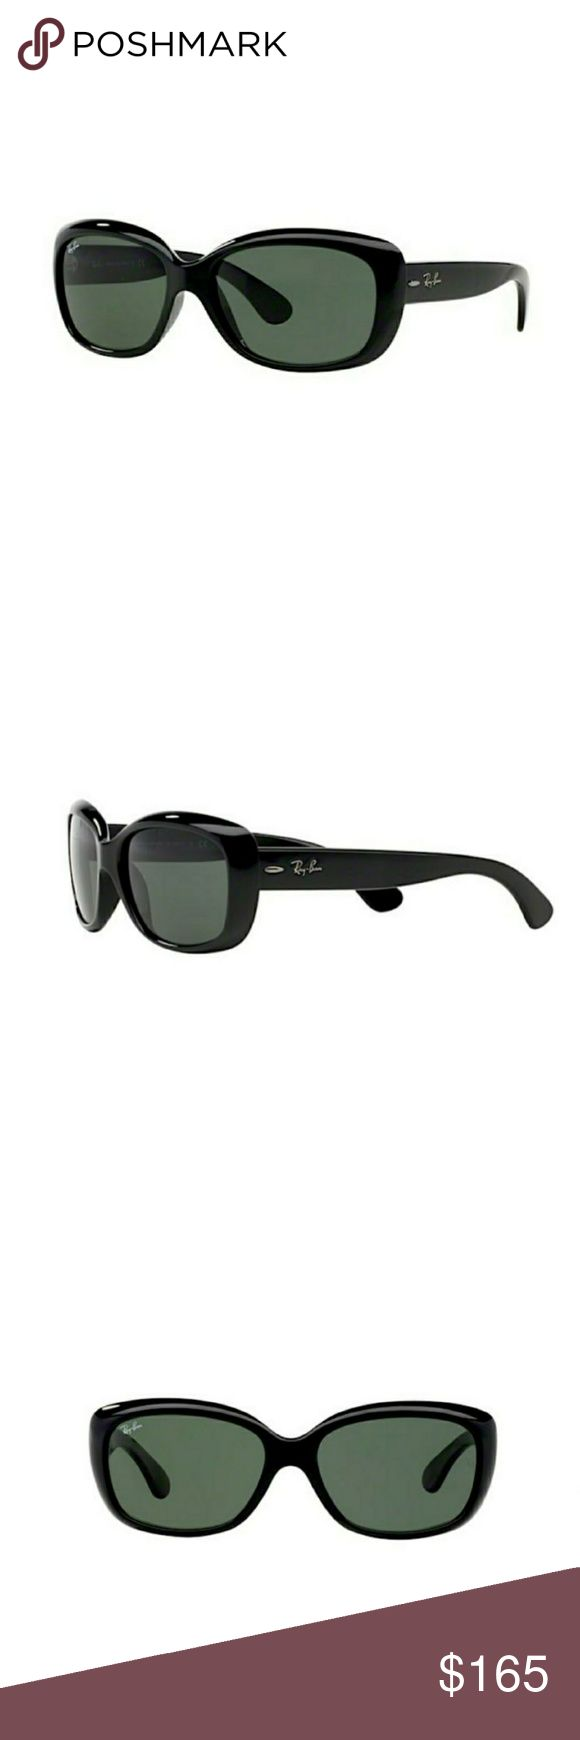 Ray-Ban Black Original Jackie O Sunglasses RB 4101 601 A unique take on the Classic Feminine Ray Ban look. The Jackie O steps up the boldness in Ray Ban women's sunglasses. Featuring Rounded corner and rectangular lens that is incredibly easy to wear. Black Frame- Ray Ban Signature on both sides. Original G-15 lenses size 58mm comes with Authentic Ray B an case and Authentic Ray Ban Cleaning Cloth NWOT. Flawless condition. Never worn. 100% authentic Ray-Ban Accessories Sunglasses